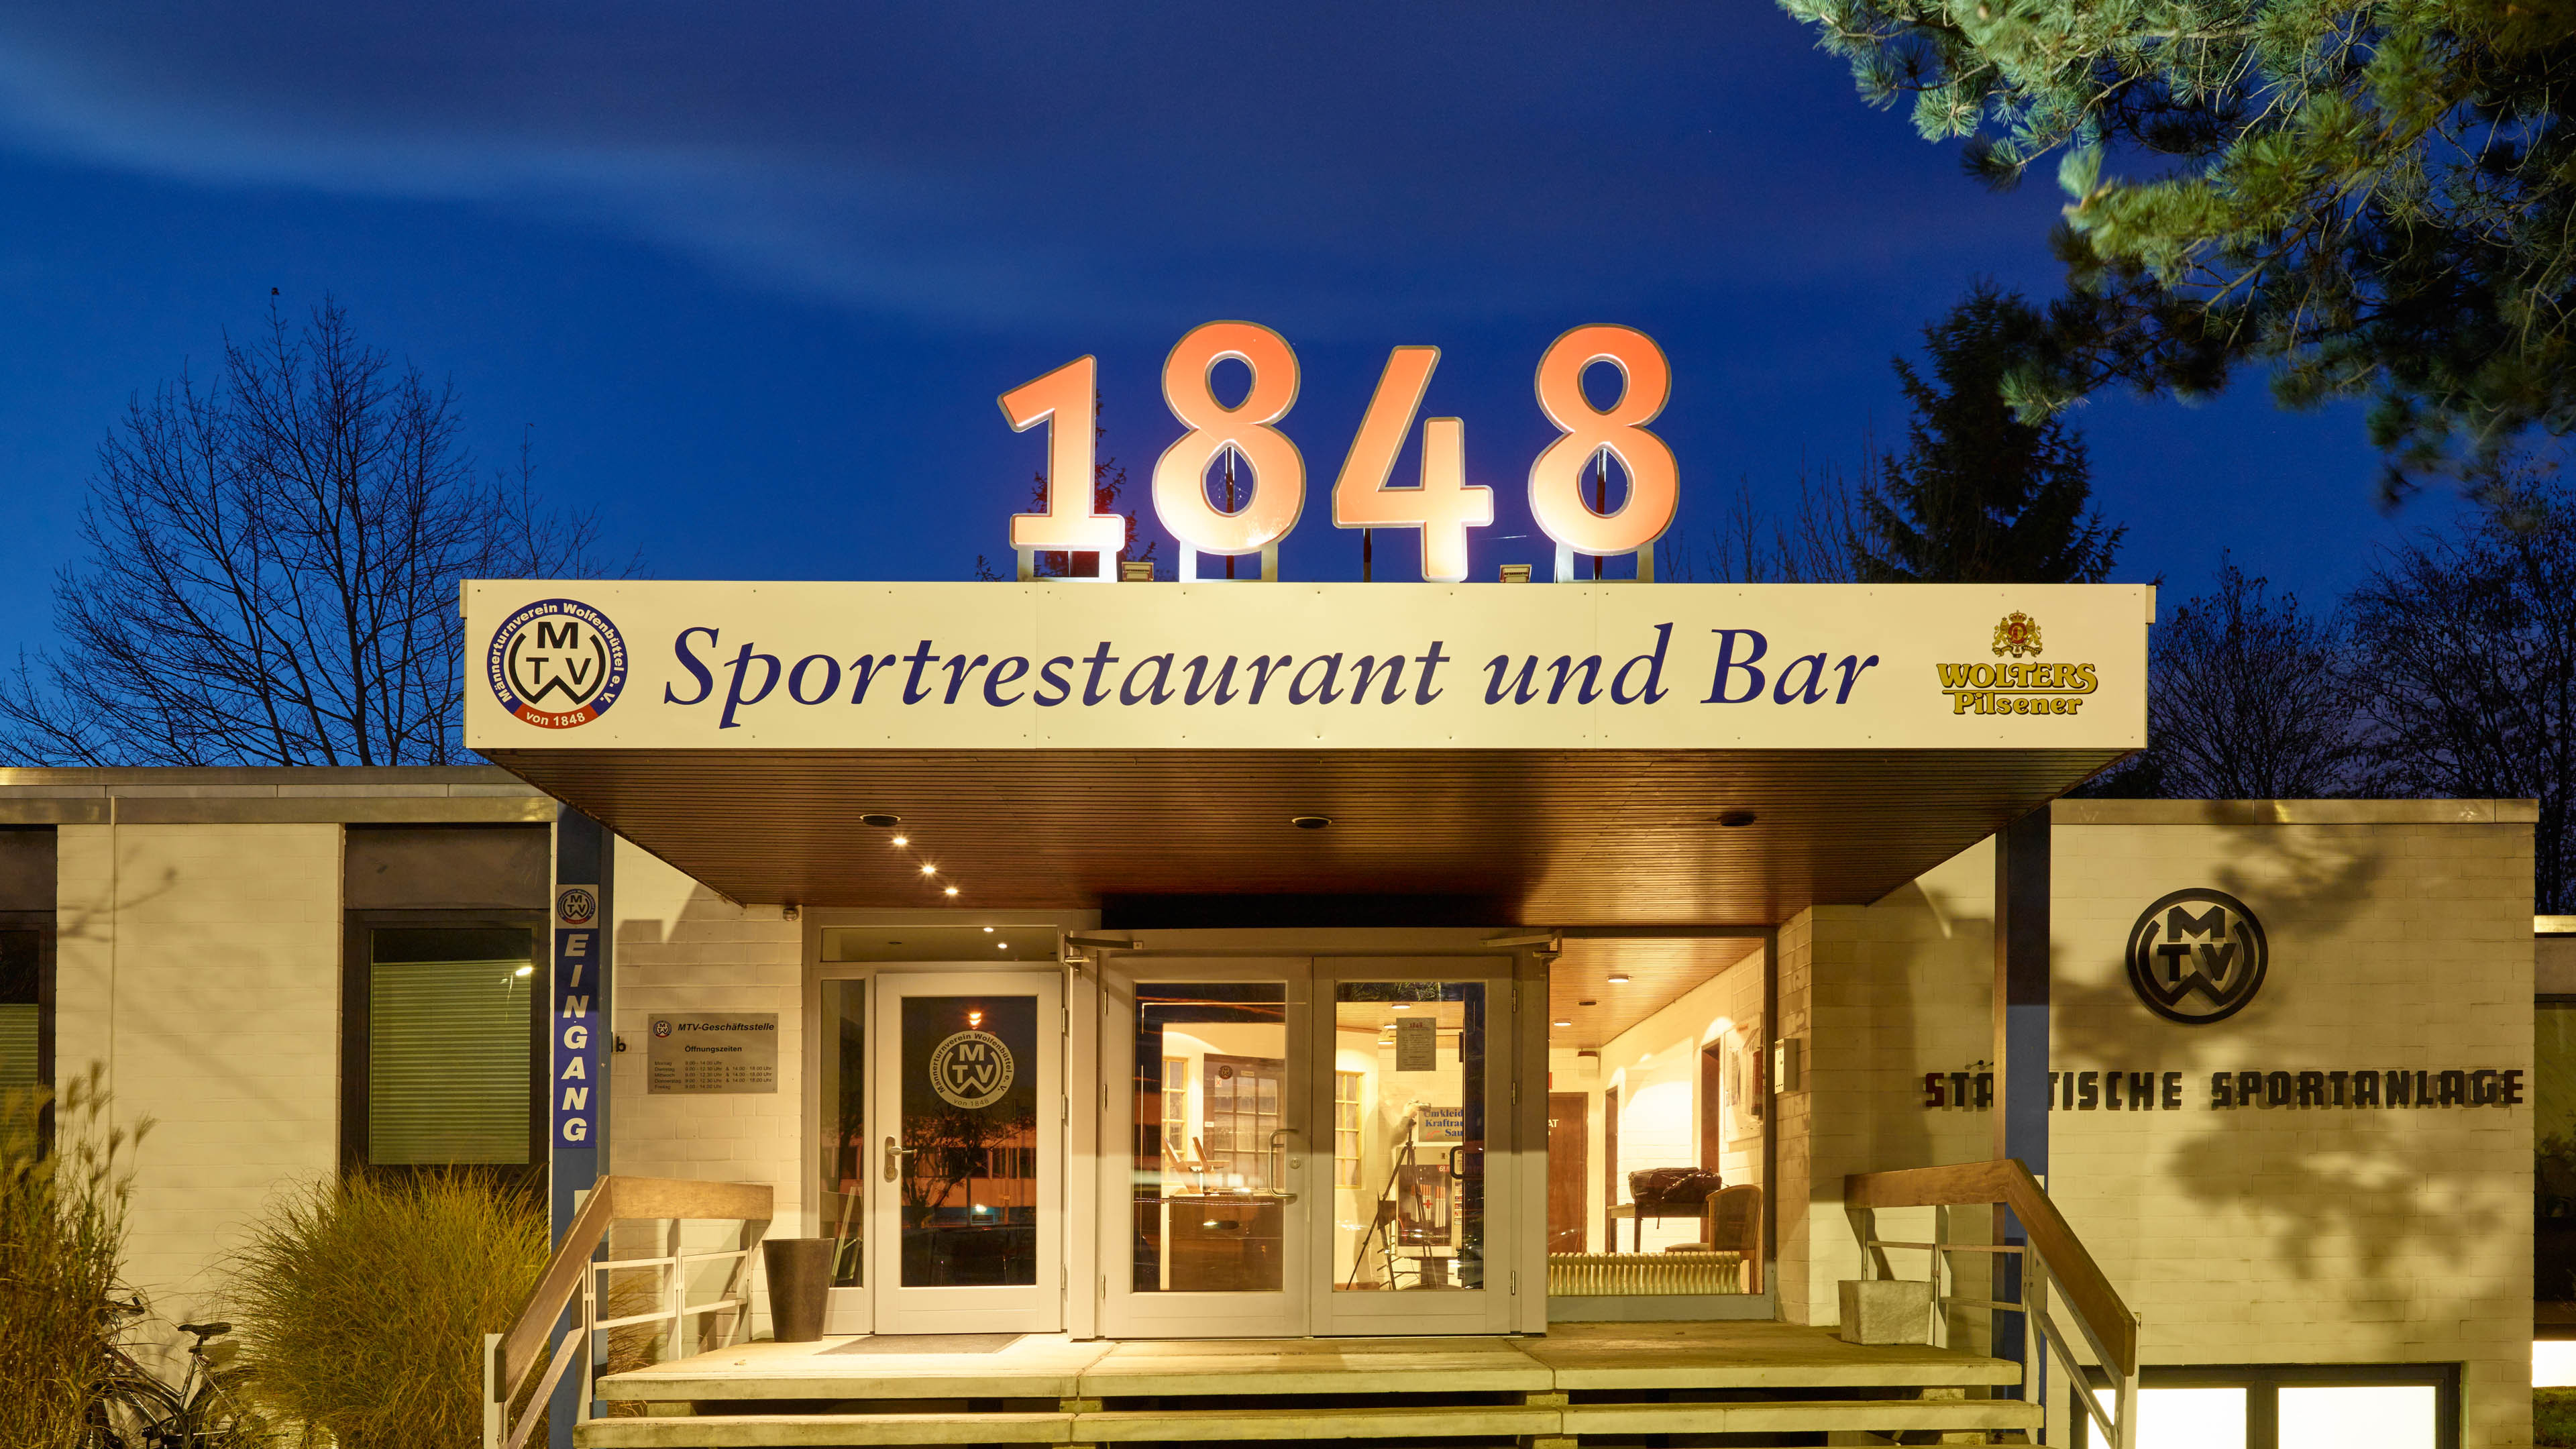 1848 - Sportrestaurant und Bar